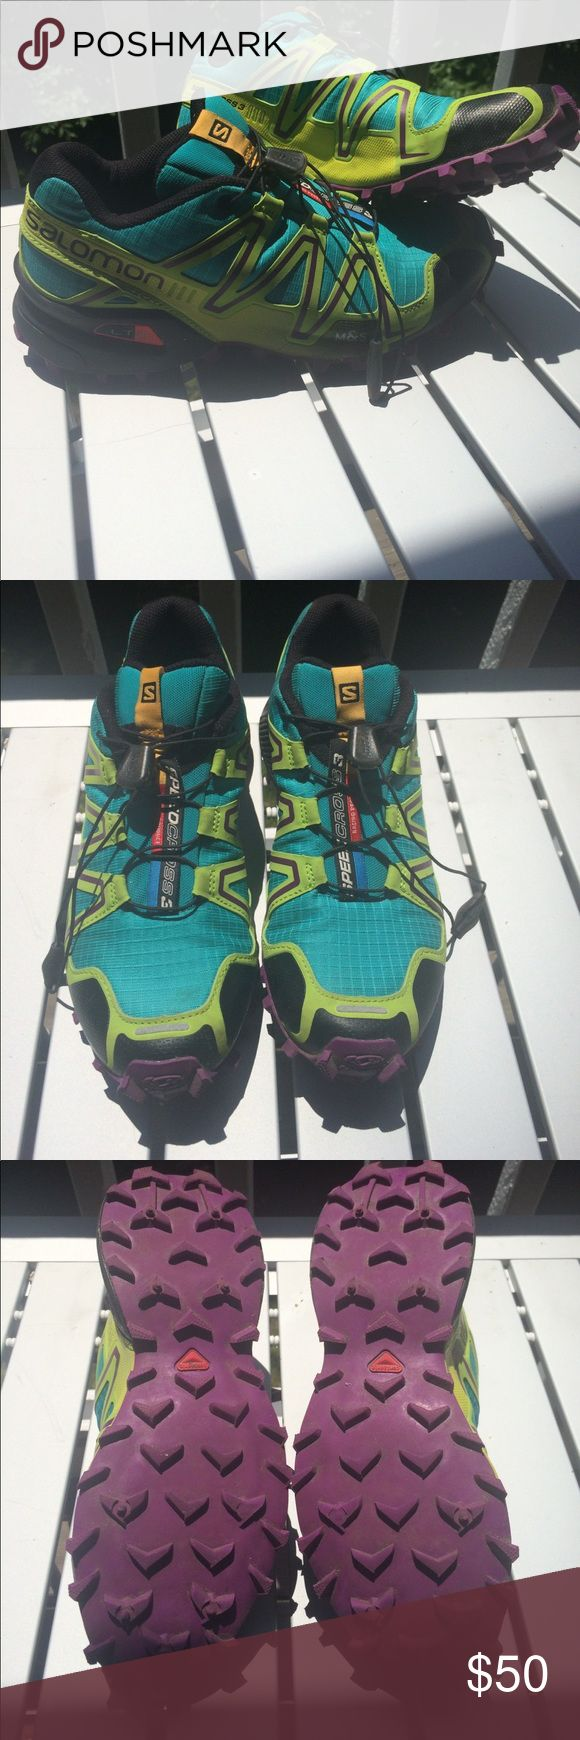 Salomon SpeedCross 3 Trail Running Shoe Size 7 I've worn these maybe four times, just a bit too small for me (I usually wear a 7.5 running shoe but couldn't get away with a 7). Extremely good condition, a bit of dirt here and there but the tread is in great shape. Perfect for trail running, or for those who don't like to hike in bulky boots. Offers considered!! Salomon Shoes Athletic Shoes